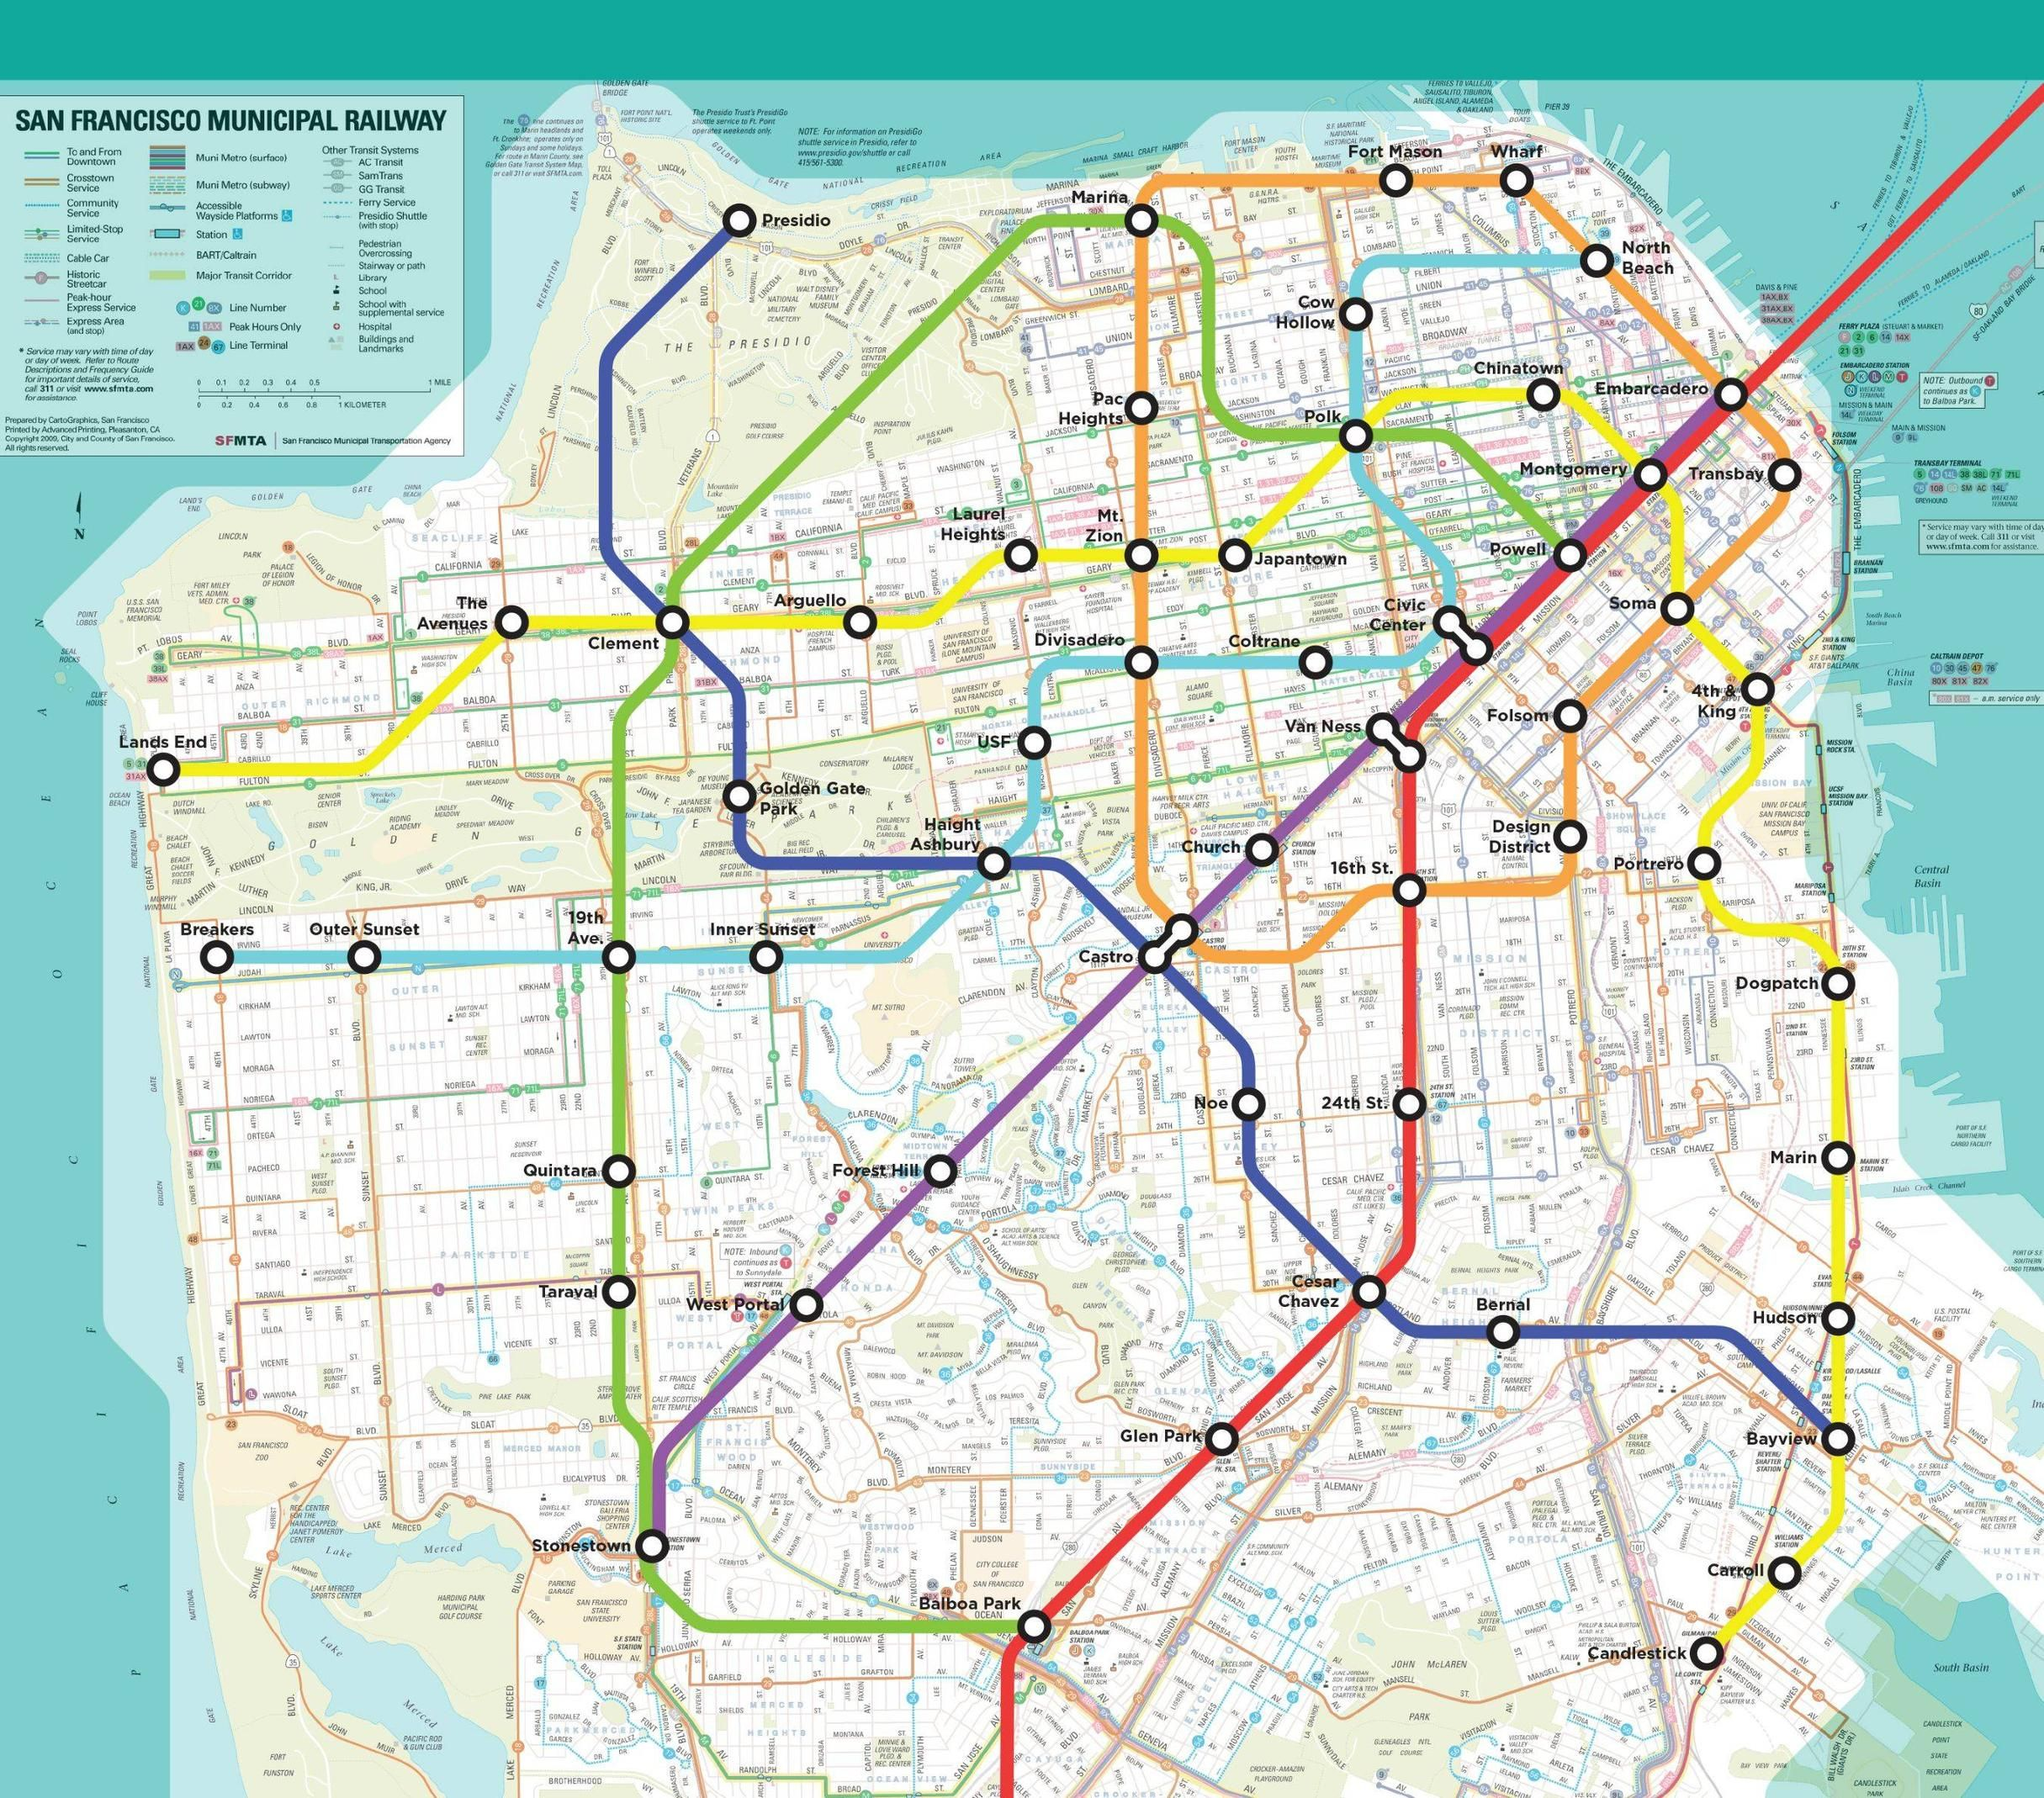 BART Fantasy Map. San Francisco Subway Metro Transit. | Transit